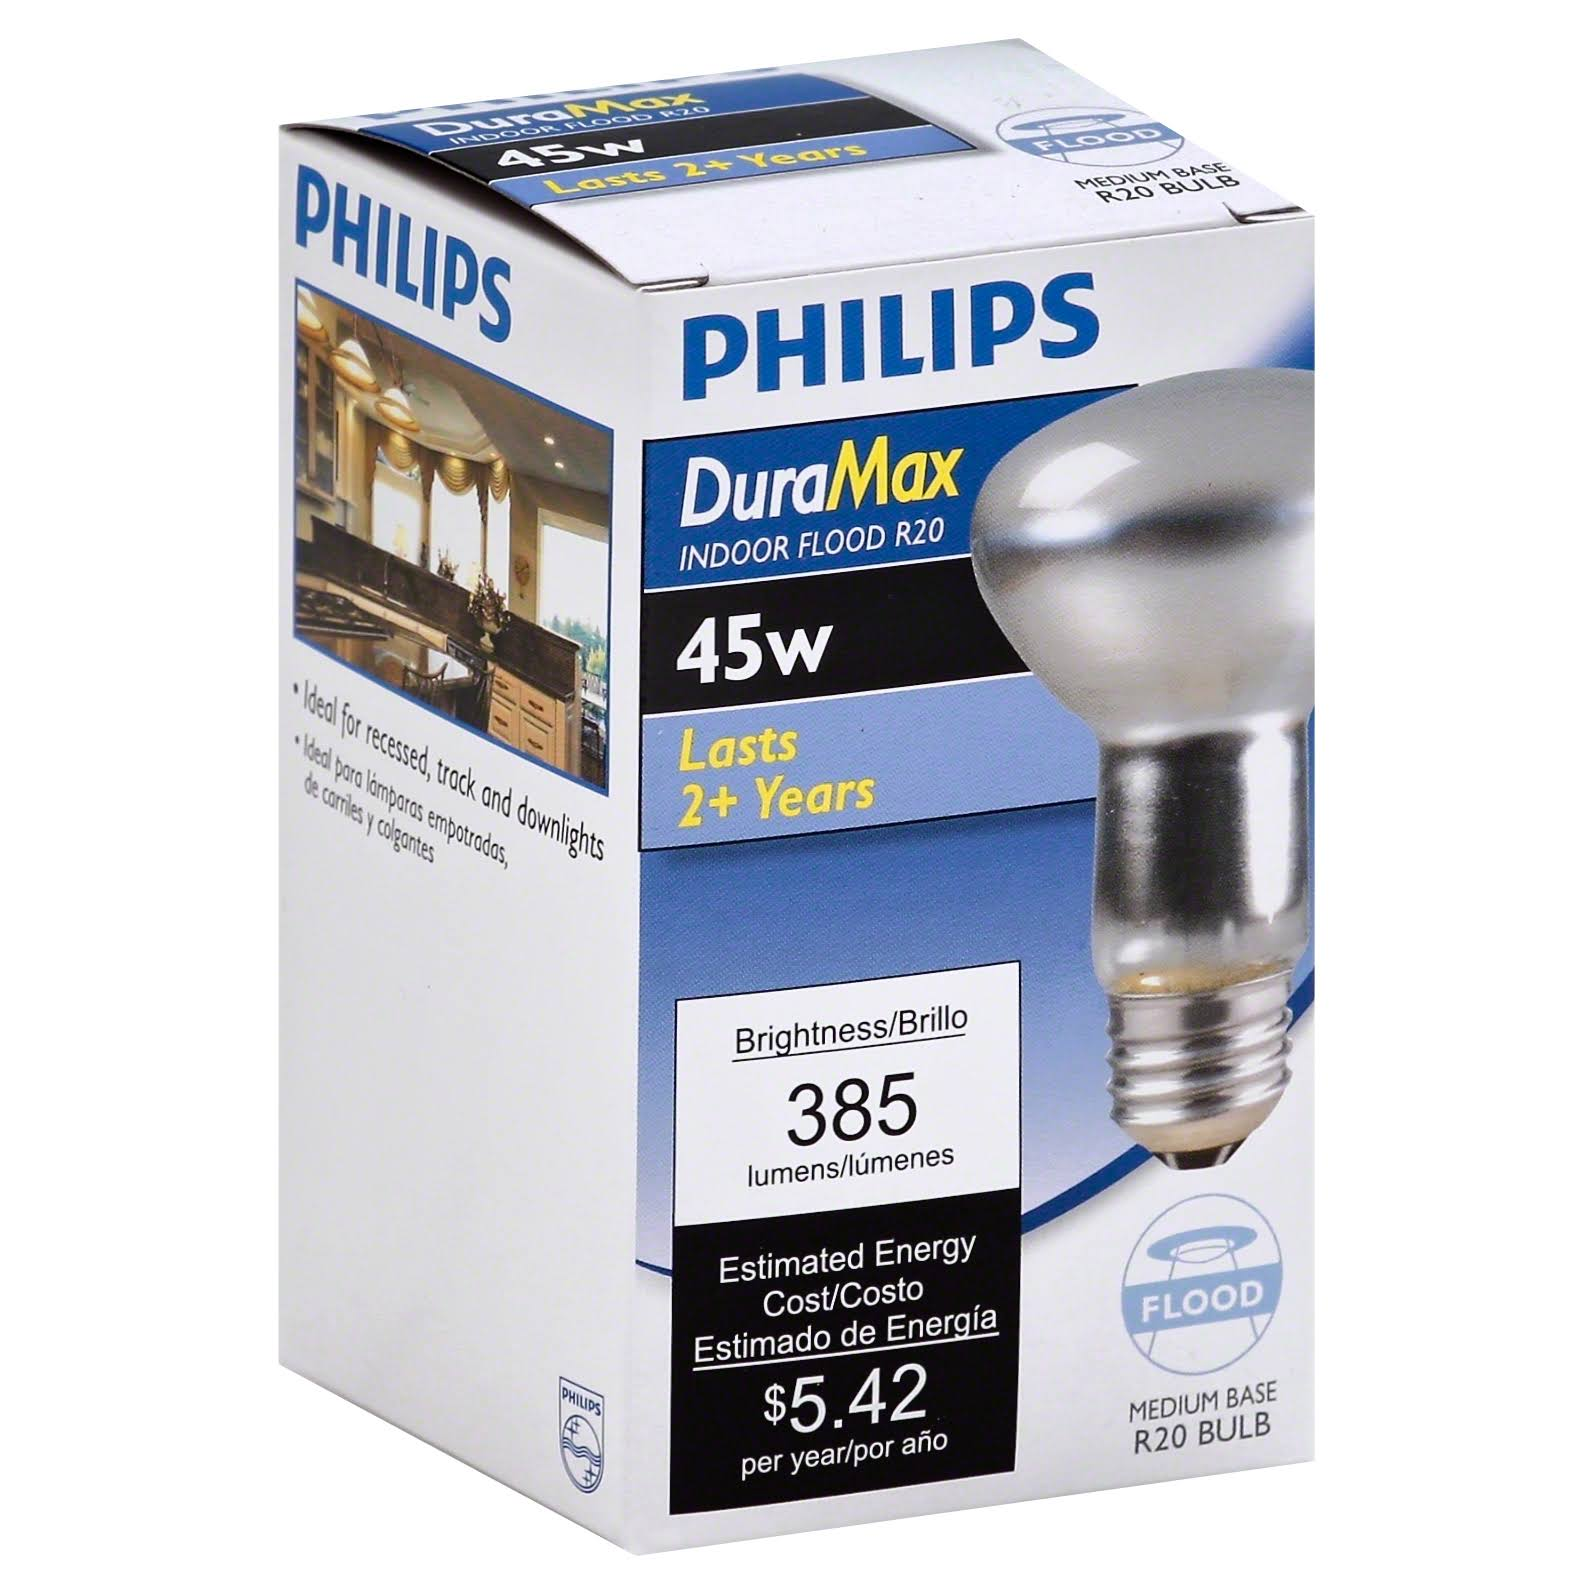 Philips DuraMax Incandescent Flood Light Bulb - 45W